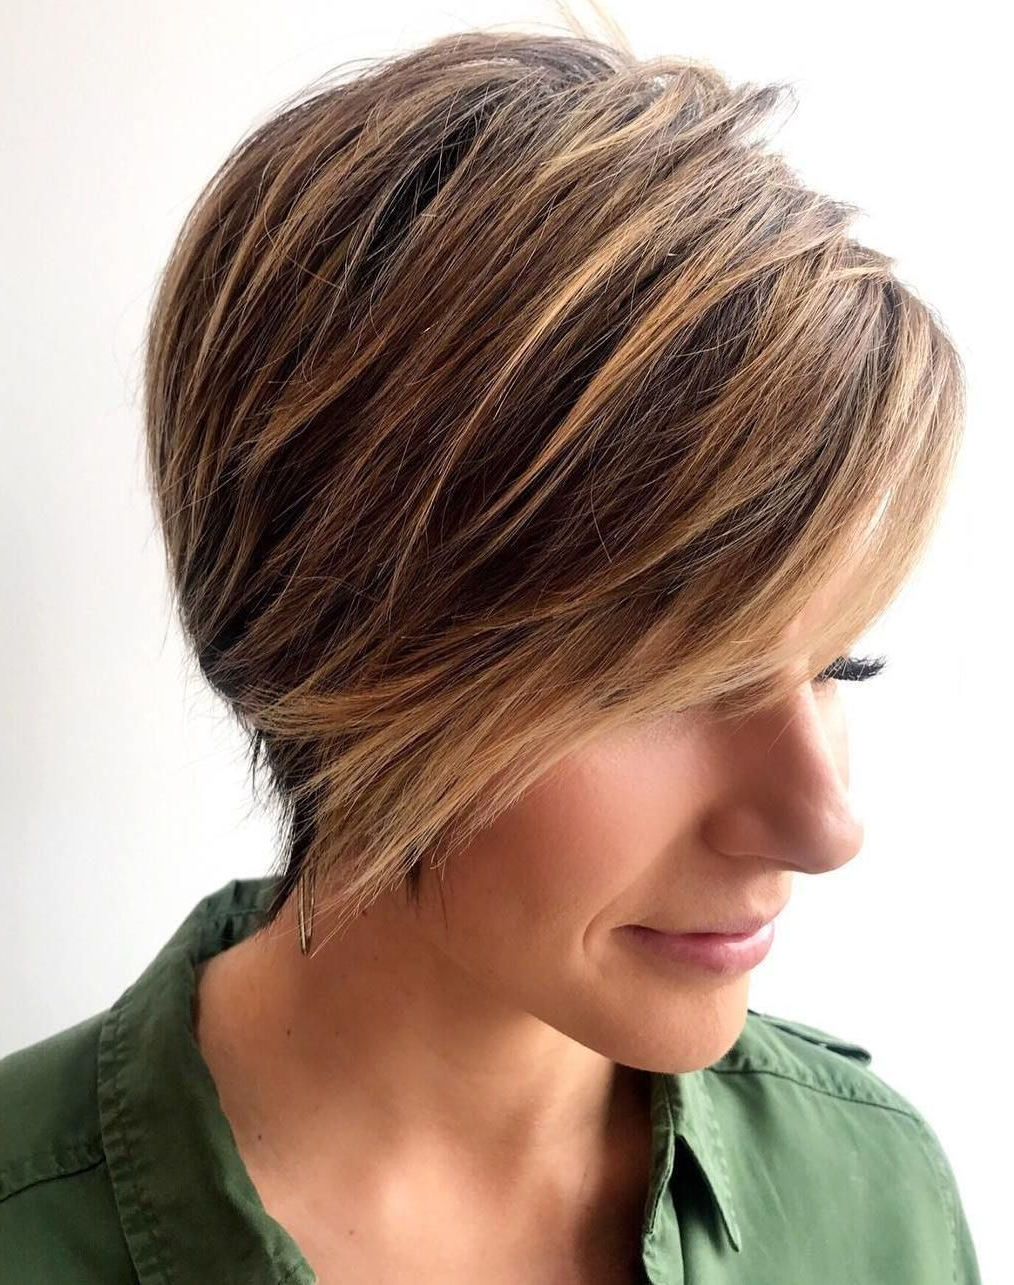 Pixie Haircuts With Bangs – 50 Terrific Tapers | Hair Styles Within Curly Pixie Haircuts With Highlights (View 6 of 20)